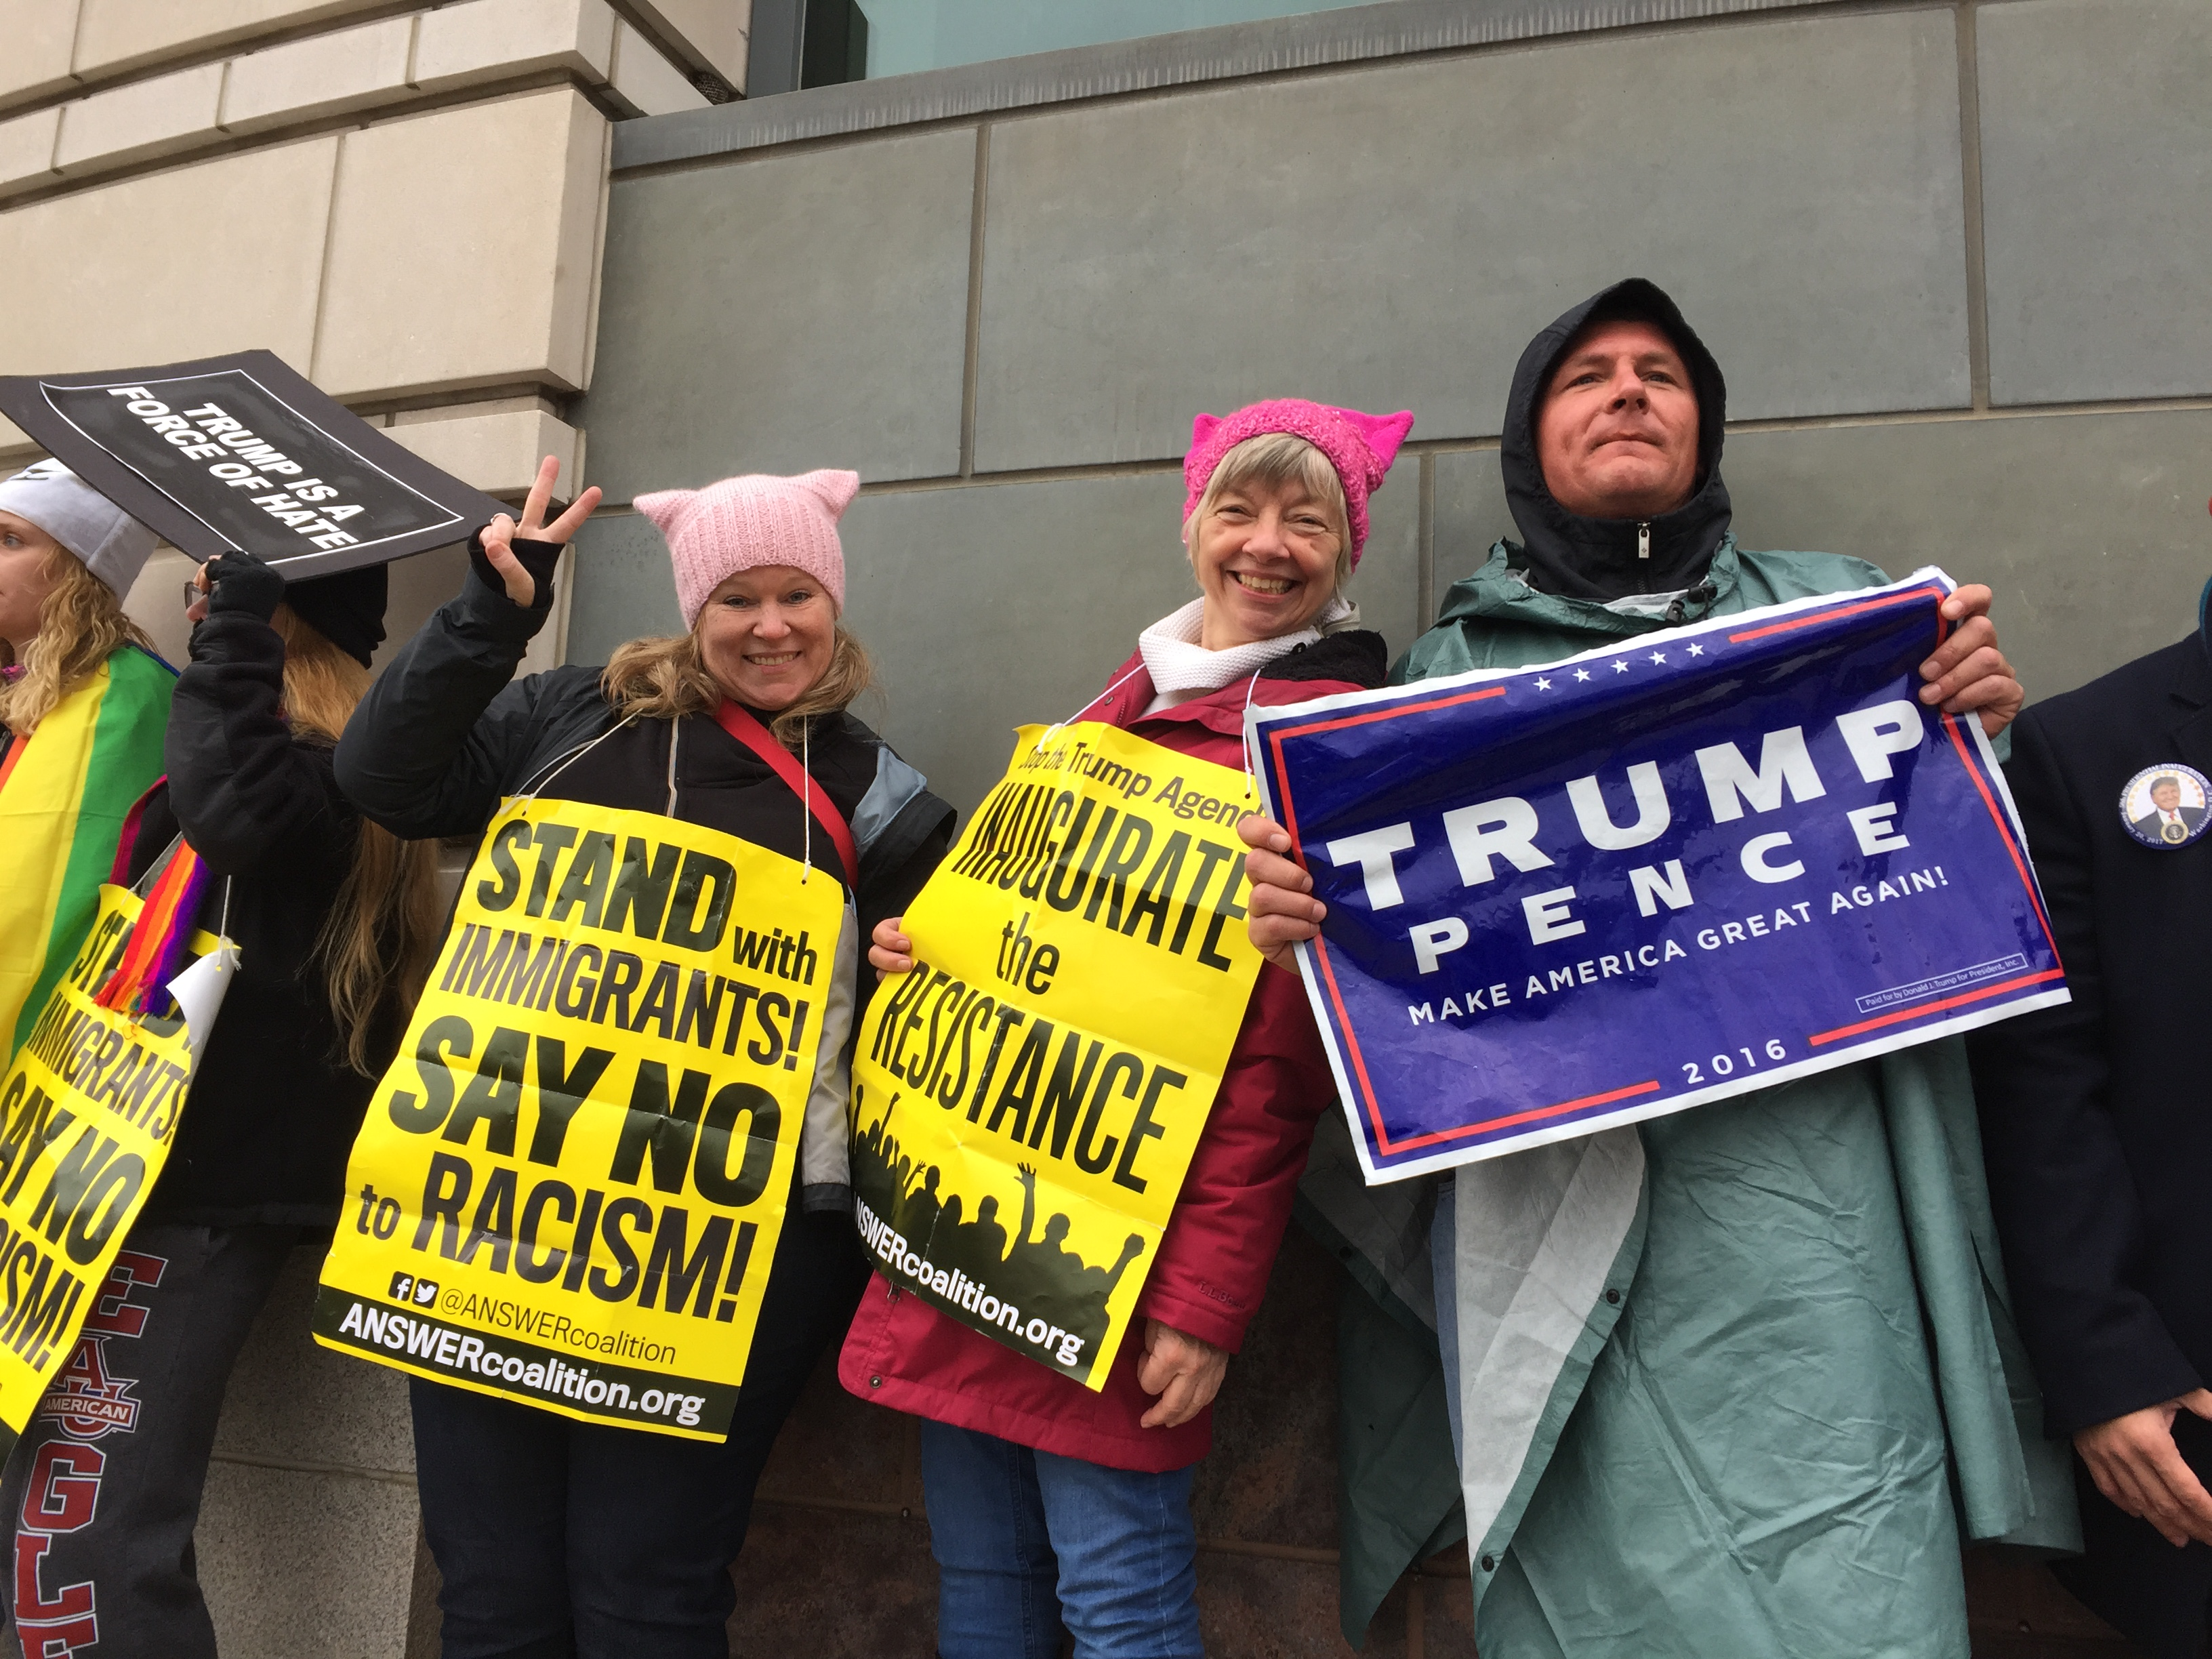 Amy McColm, 44, (left) and Chris Hinds, 68, (middle) of Tacoma, Washington, traveled to Washington, DC, for the Women's March. They stand alongside Trump supporter James Burnett, 43, (right) of Portsmouth, Virginia, along the inaugural parade route on Pennsylvania Avenue.